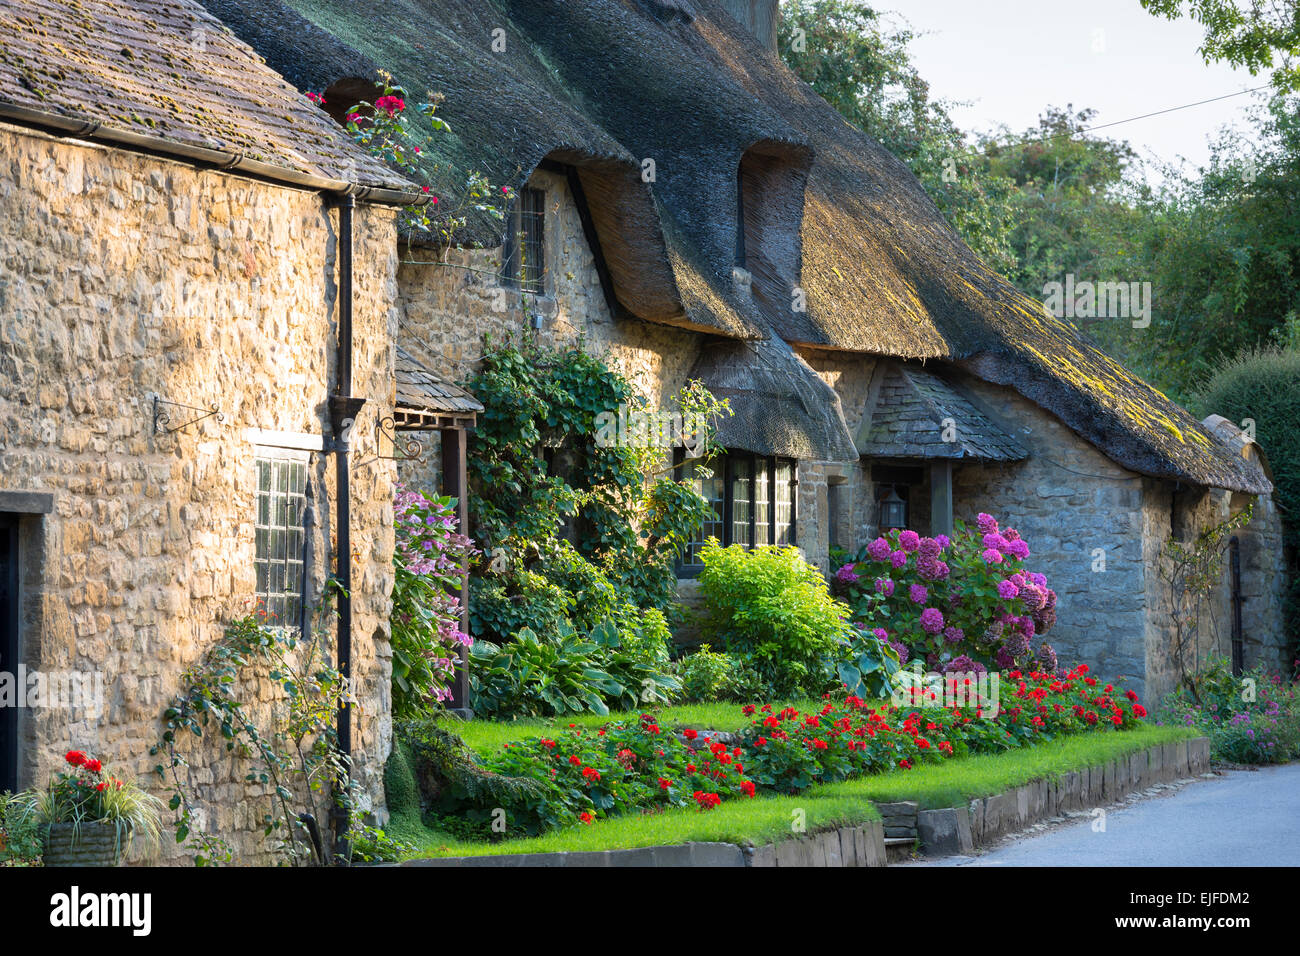 Quaint attractive traditional thatched country cottage at Broad Campden in the Cotswolds, Gloucestershire, England, - Stock Image